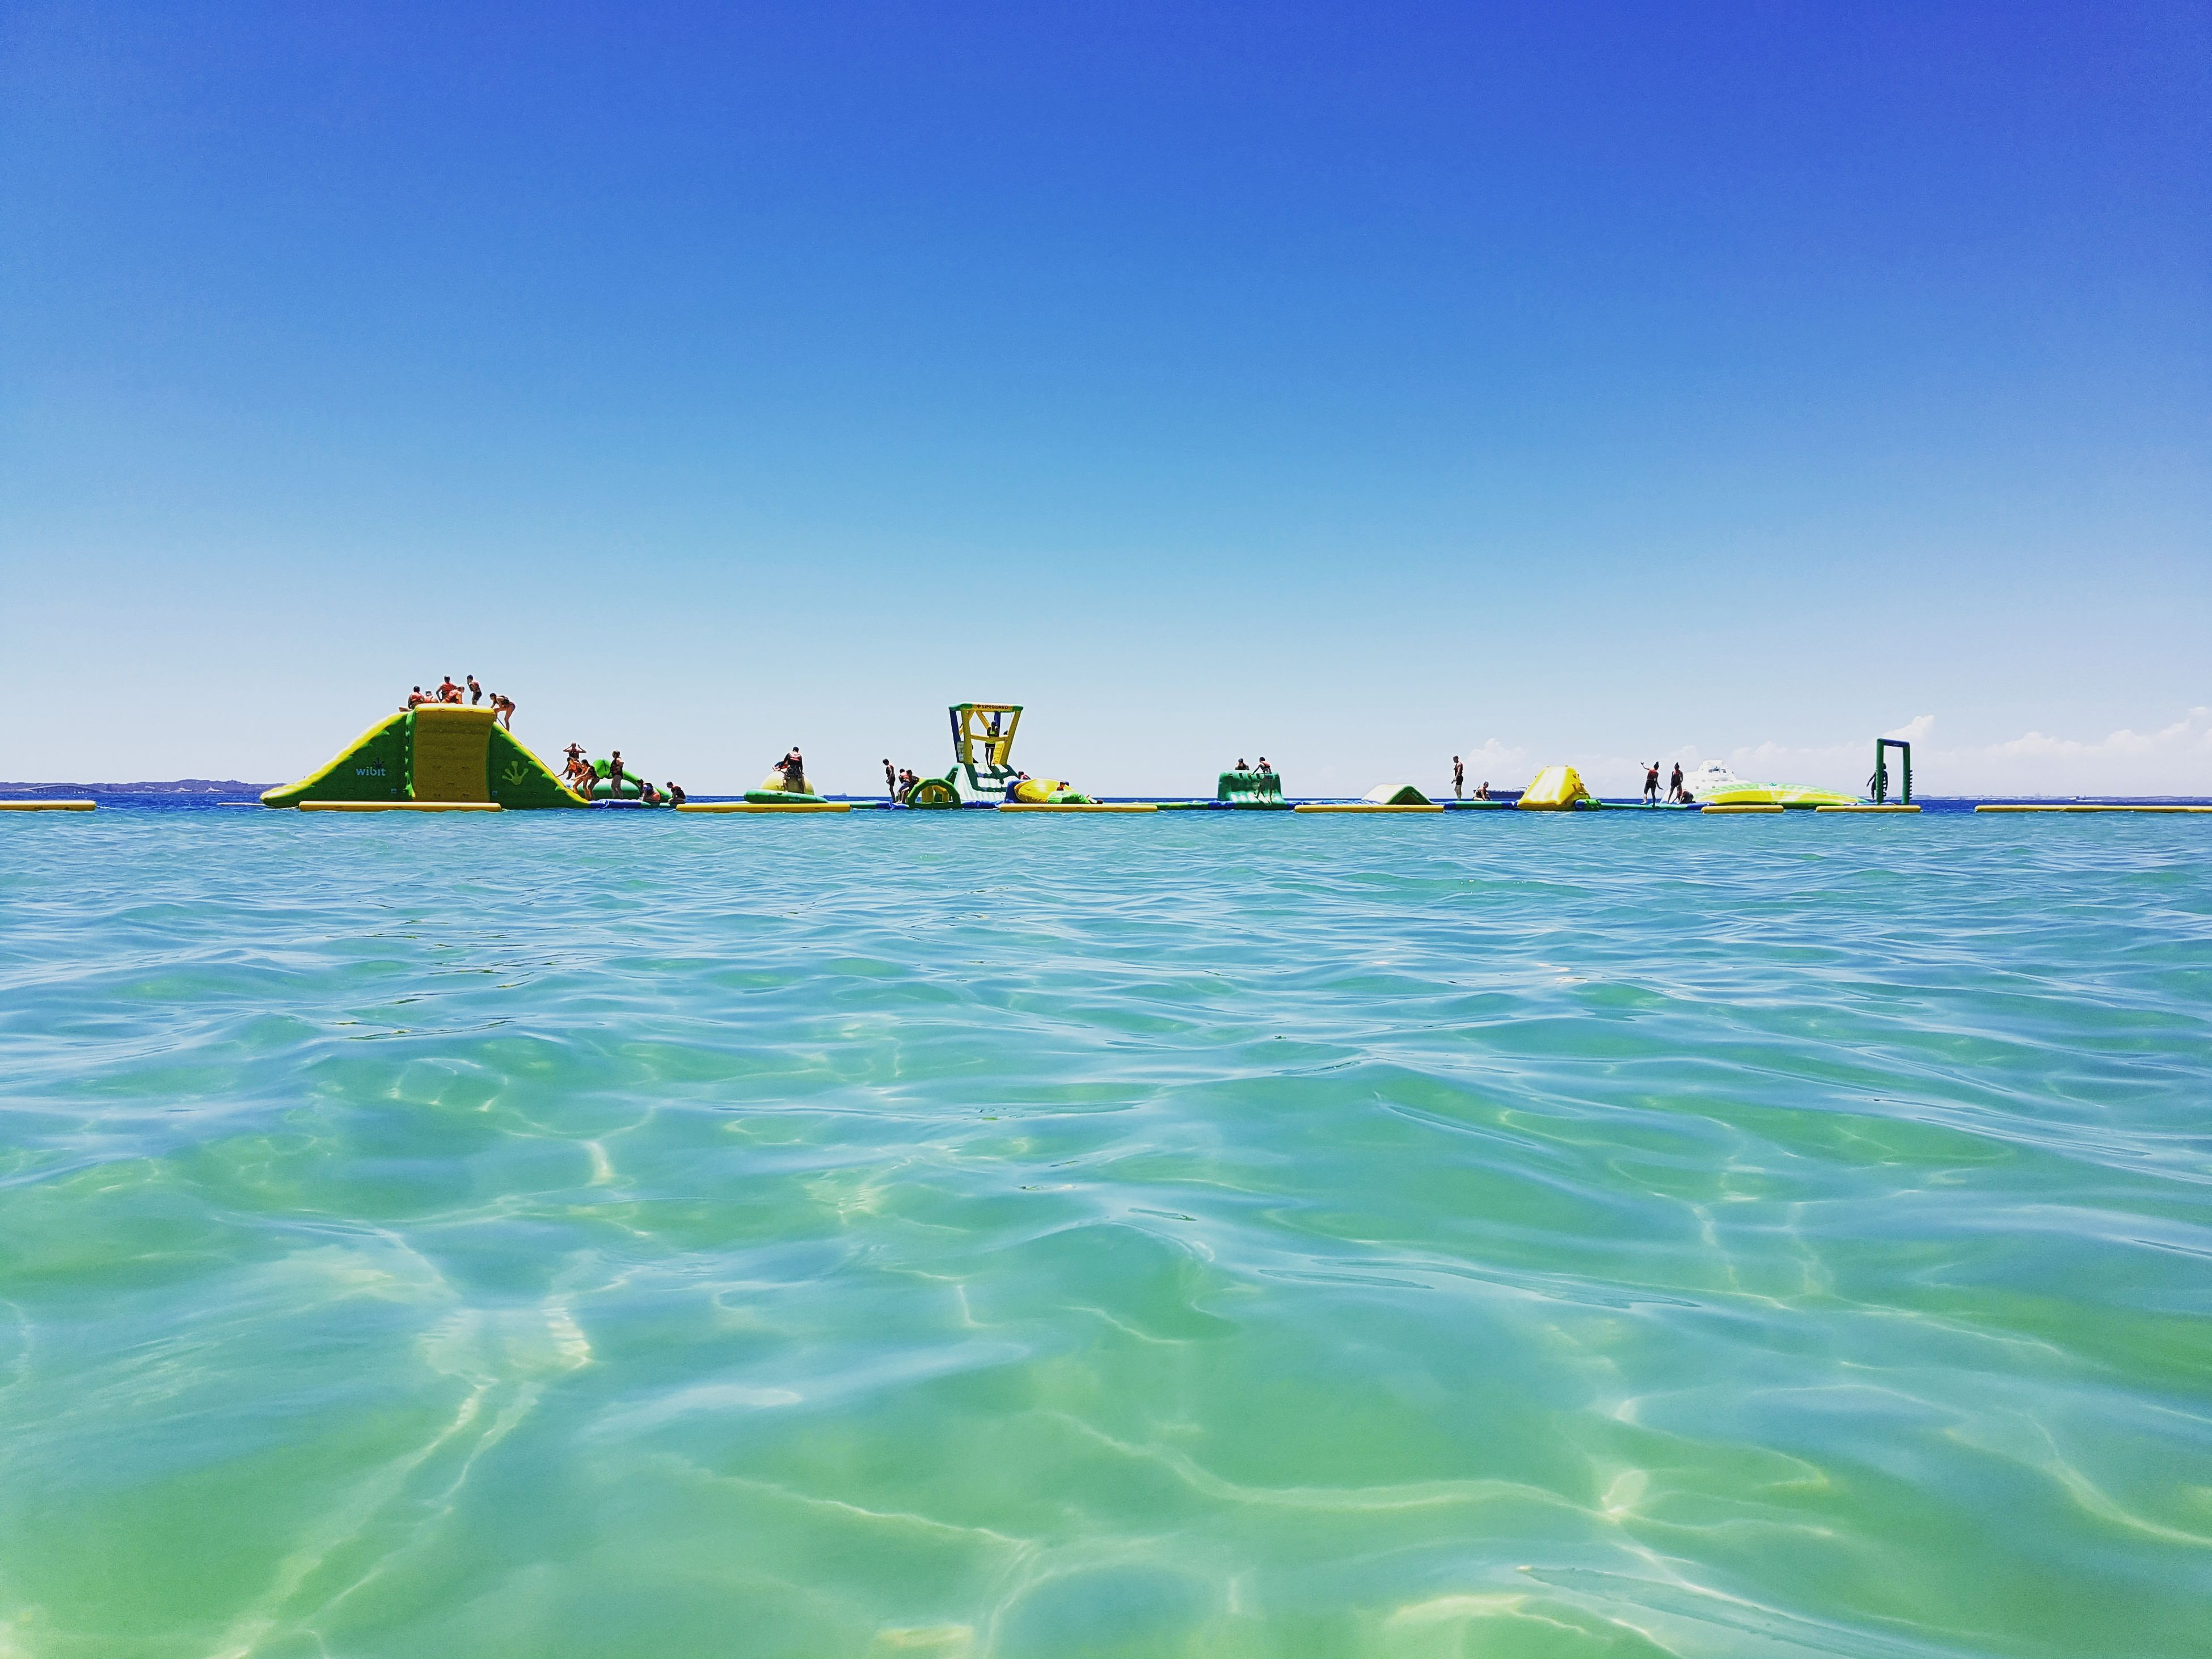 sea, blue, water, clear sky, scenics, nature, tranquility, sunlight, beach, beauty in nature, tranquil scene, day, sky, outdoors, vacations, no people, sand, architecture, horizon over water